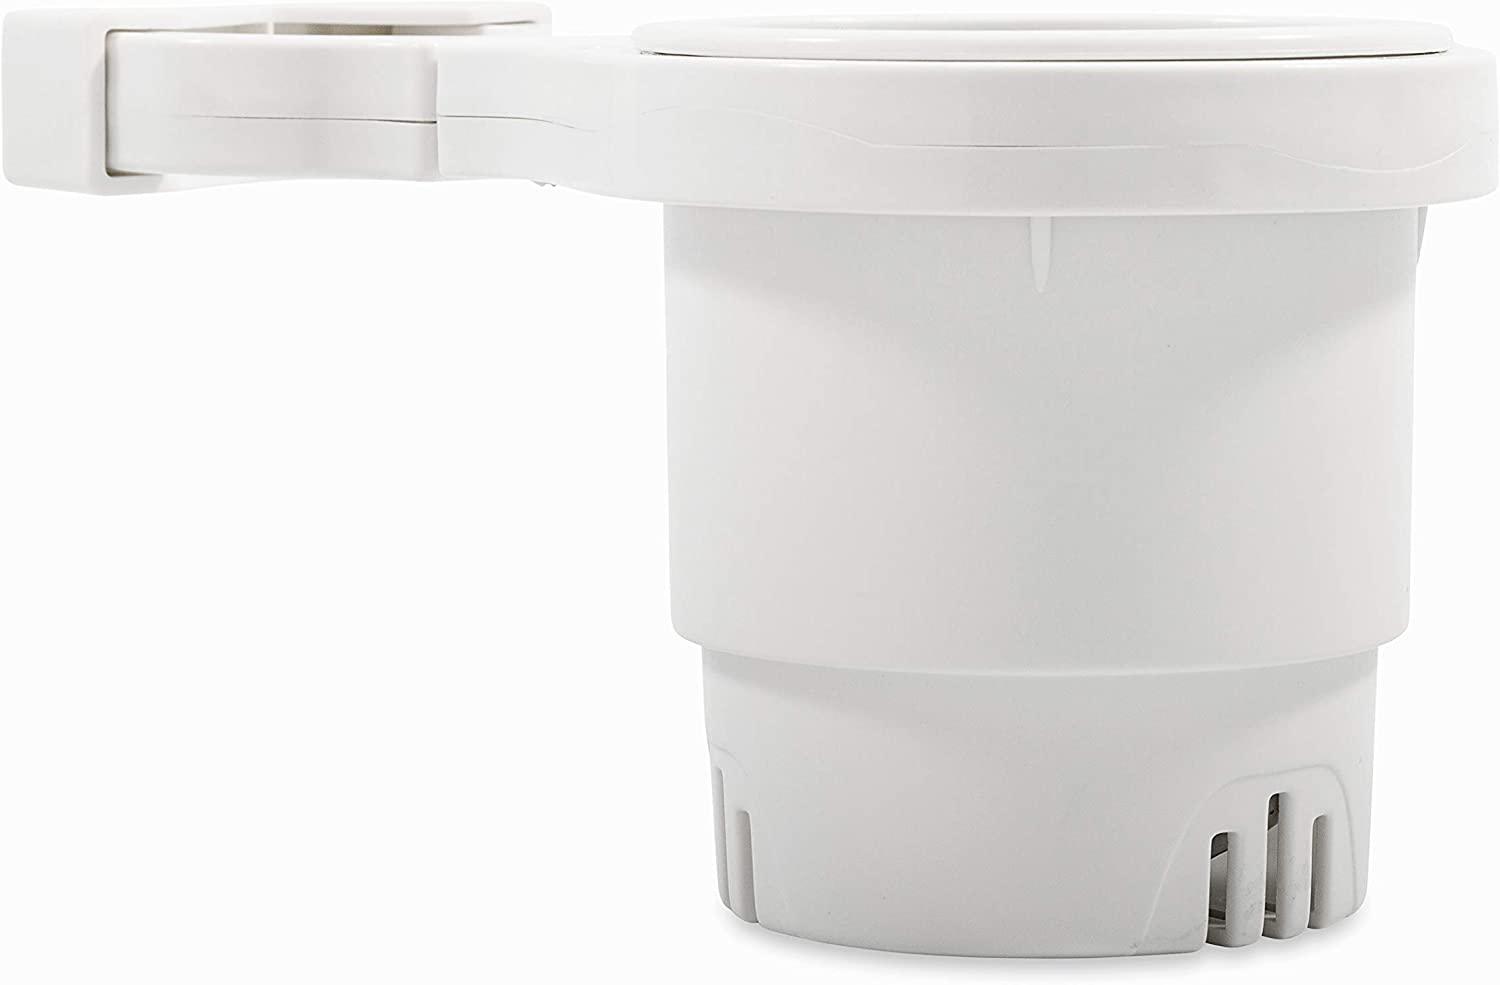 Camco Large Clamp Mounted Cup Holder-Provides a Secure Location for Your Beverage-Mountable for Up to 2-Inch Rail-White (53083)